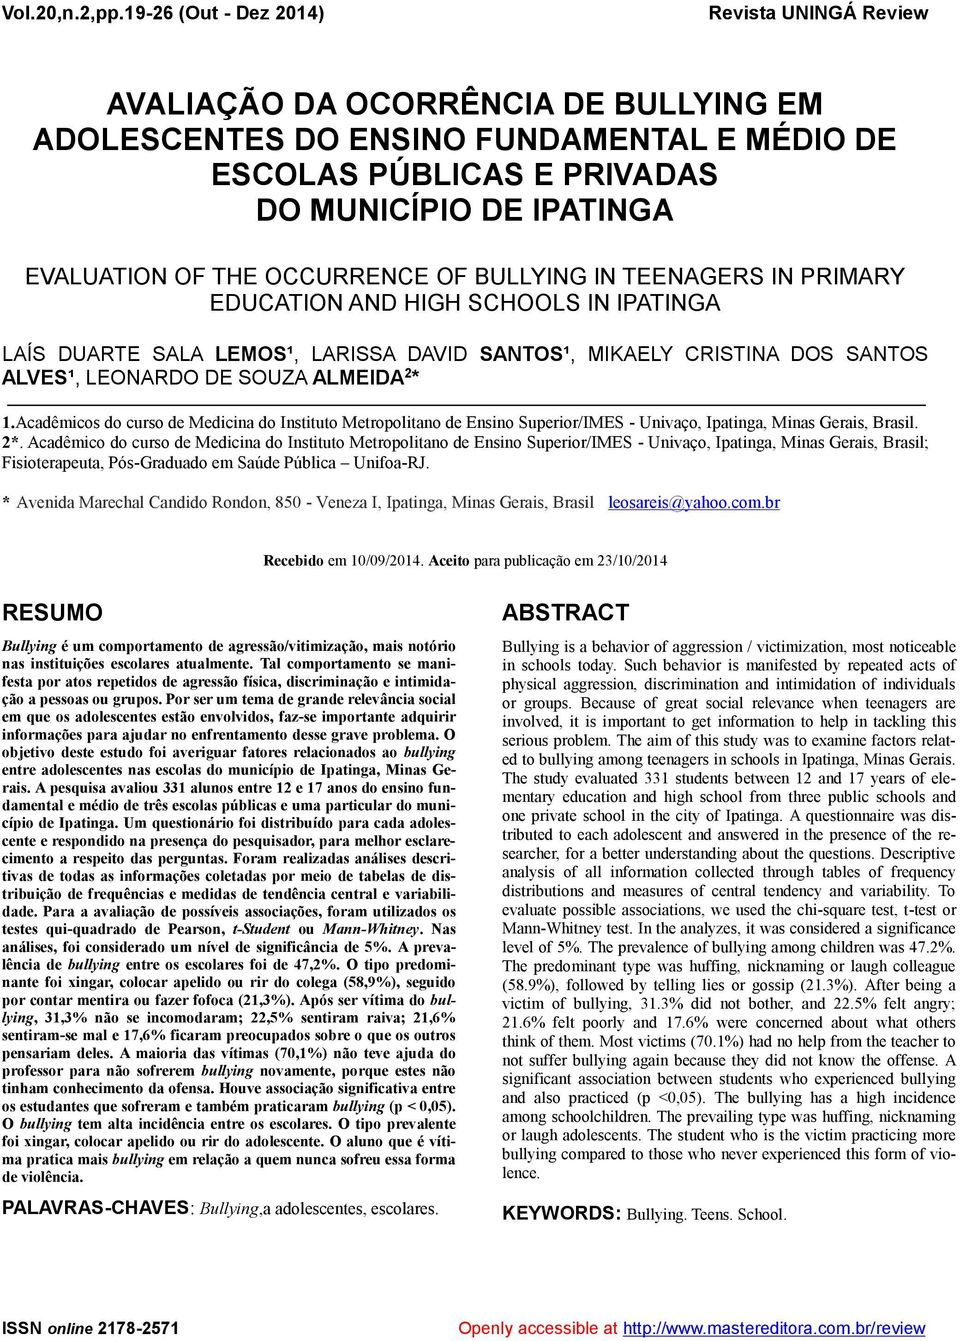 THE OCCURRENCE OF BULLYING IN TEENAGERS IN PRIMARY EDUCATION AND HIGH SCHOOLS IN IPATINGA LAÍS DUARTE SALA LEMOS¹, LARISSA DAVID SANTOS¹, MIKAELY CRISTINA DOS SANTOS ALVES¹, LEONARDO DE SOUZA ALMEIDA